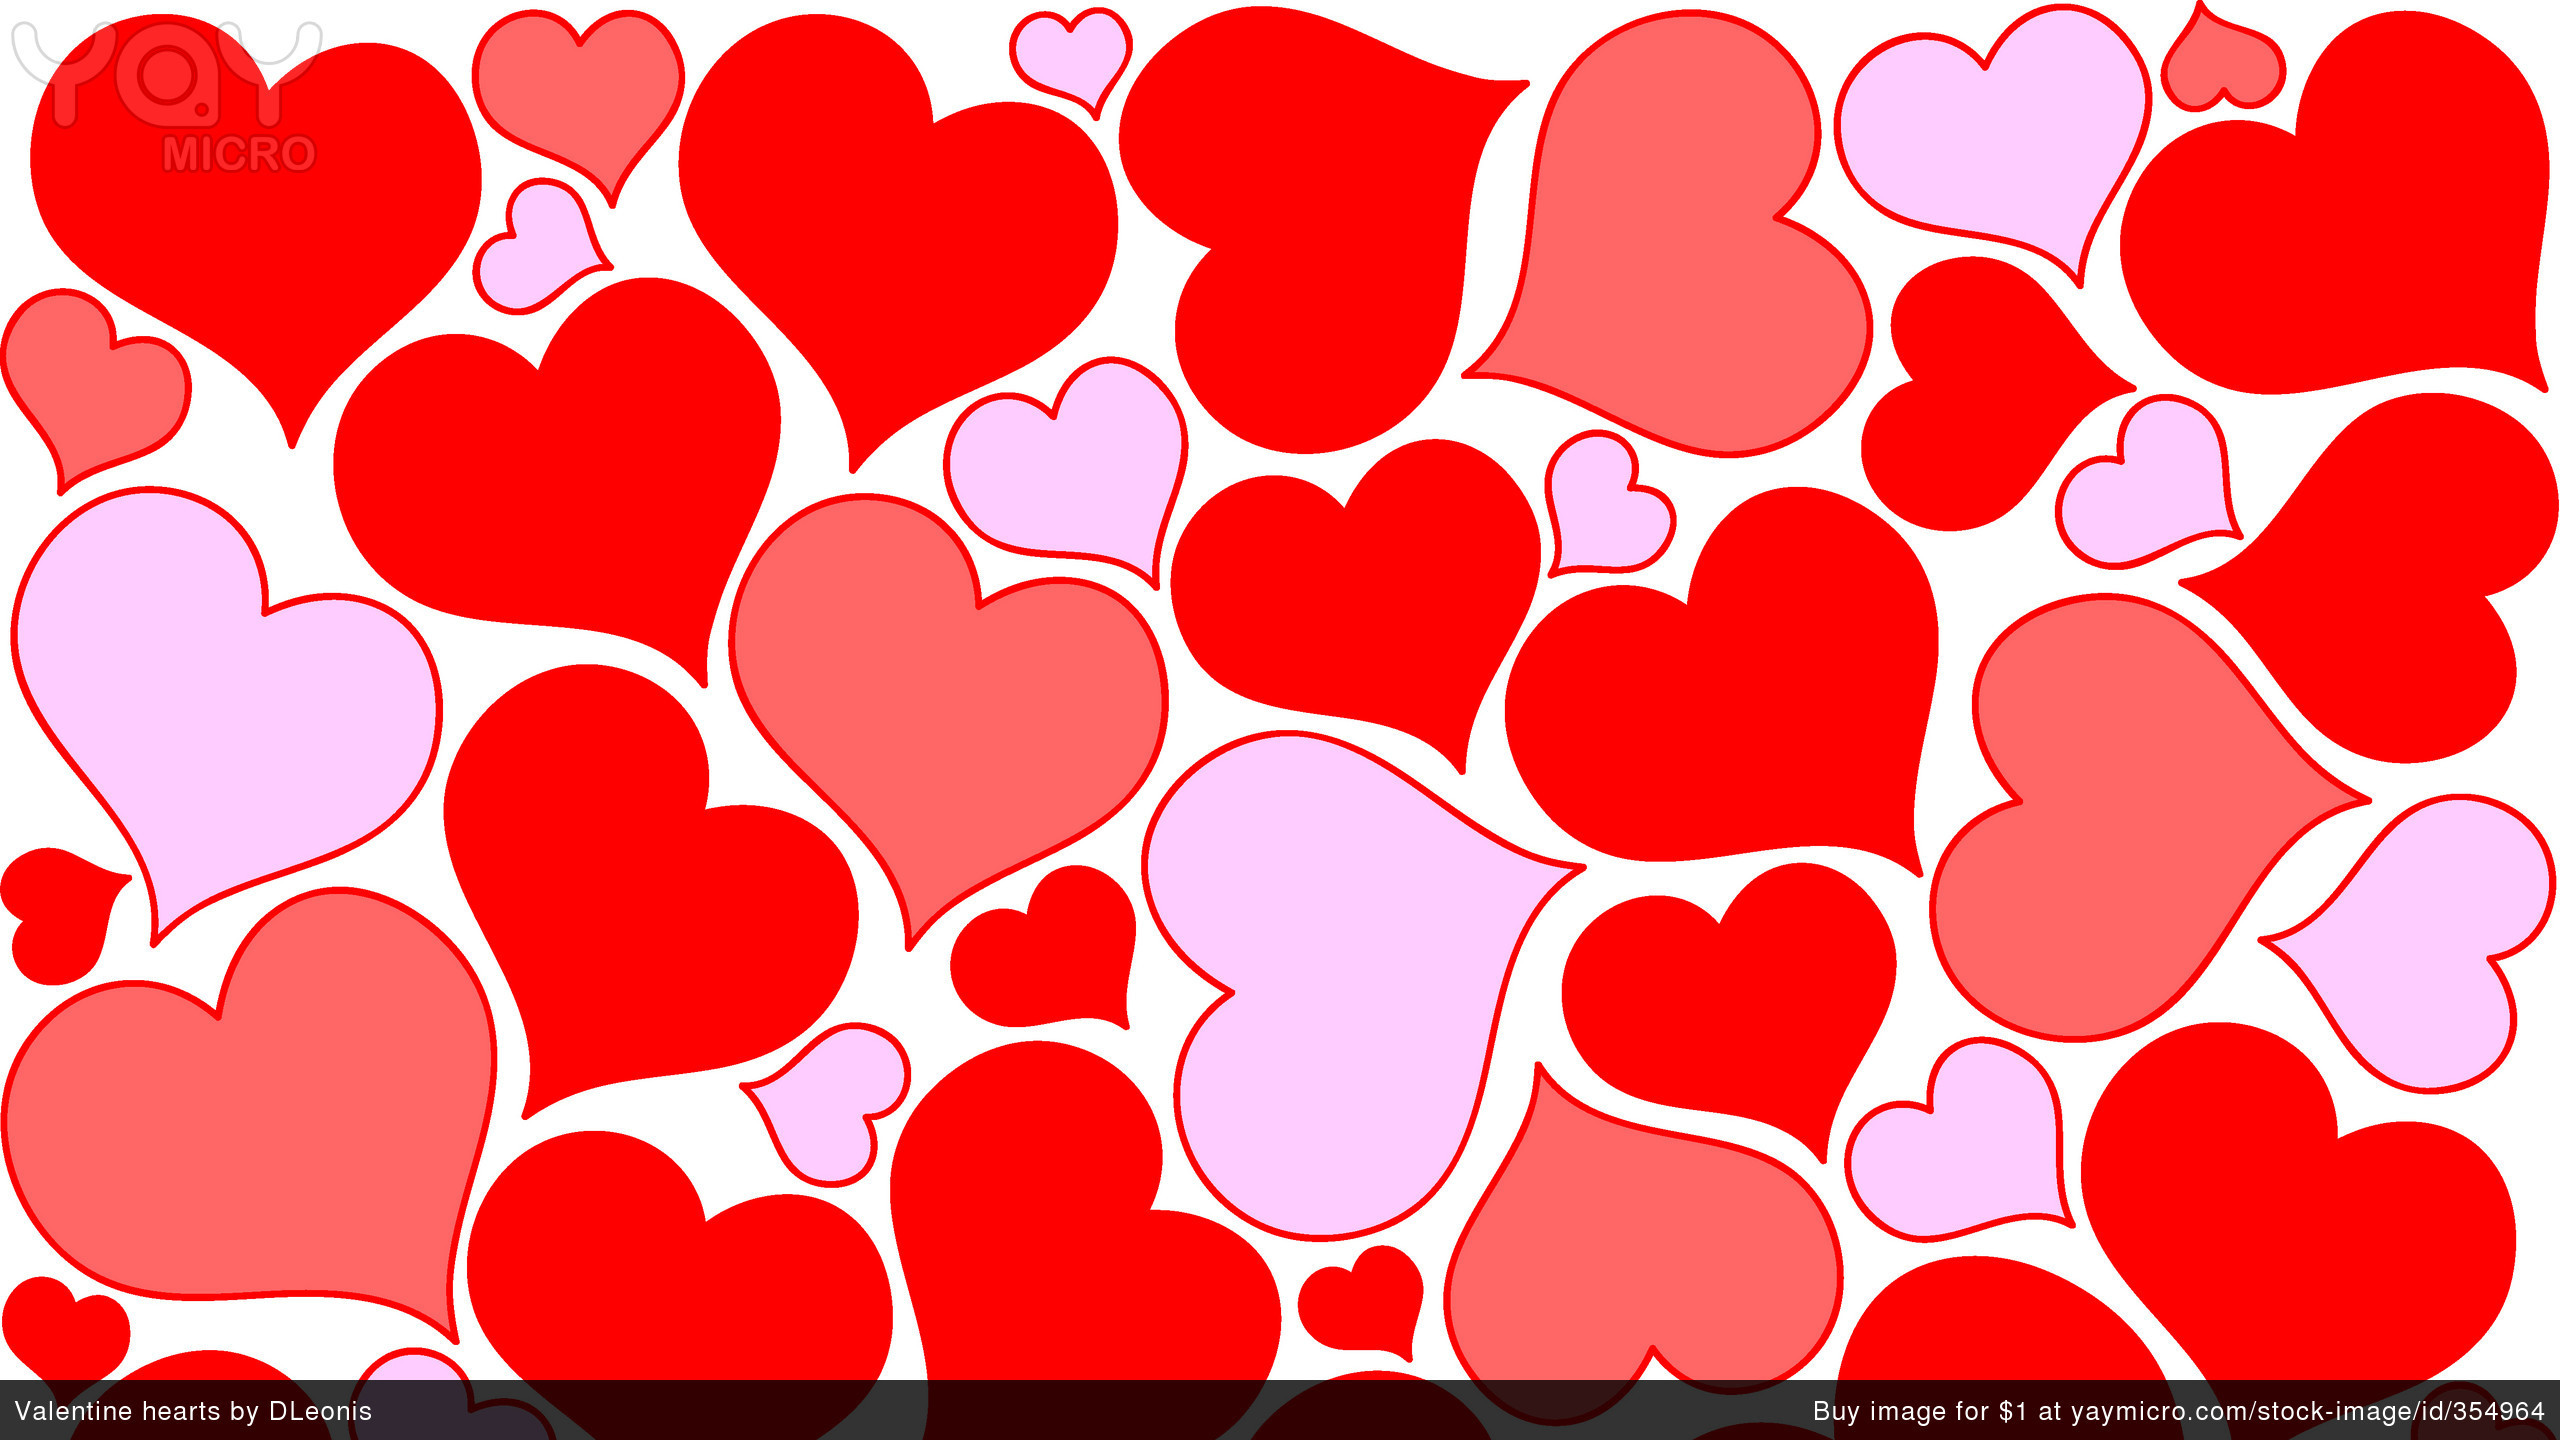 2560x1440 Free Wallpapers for Desktop - Valentine Hearts Valentine Heart